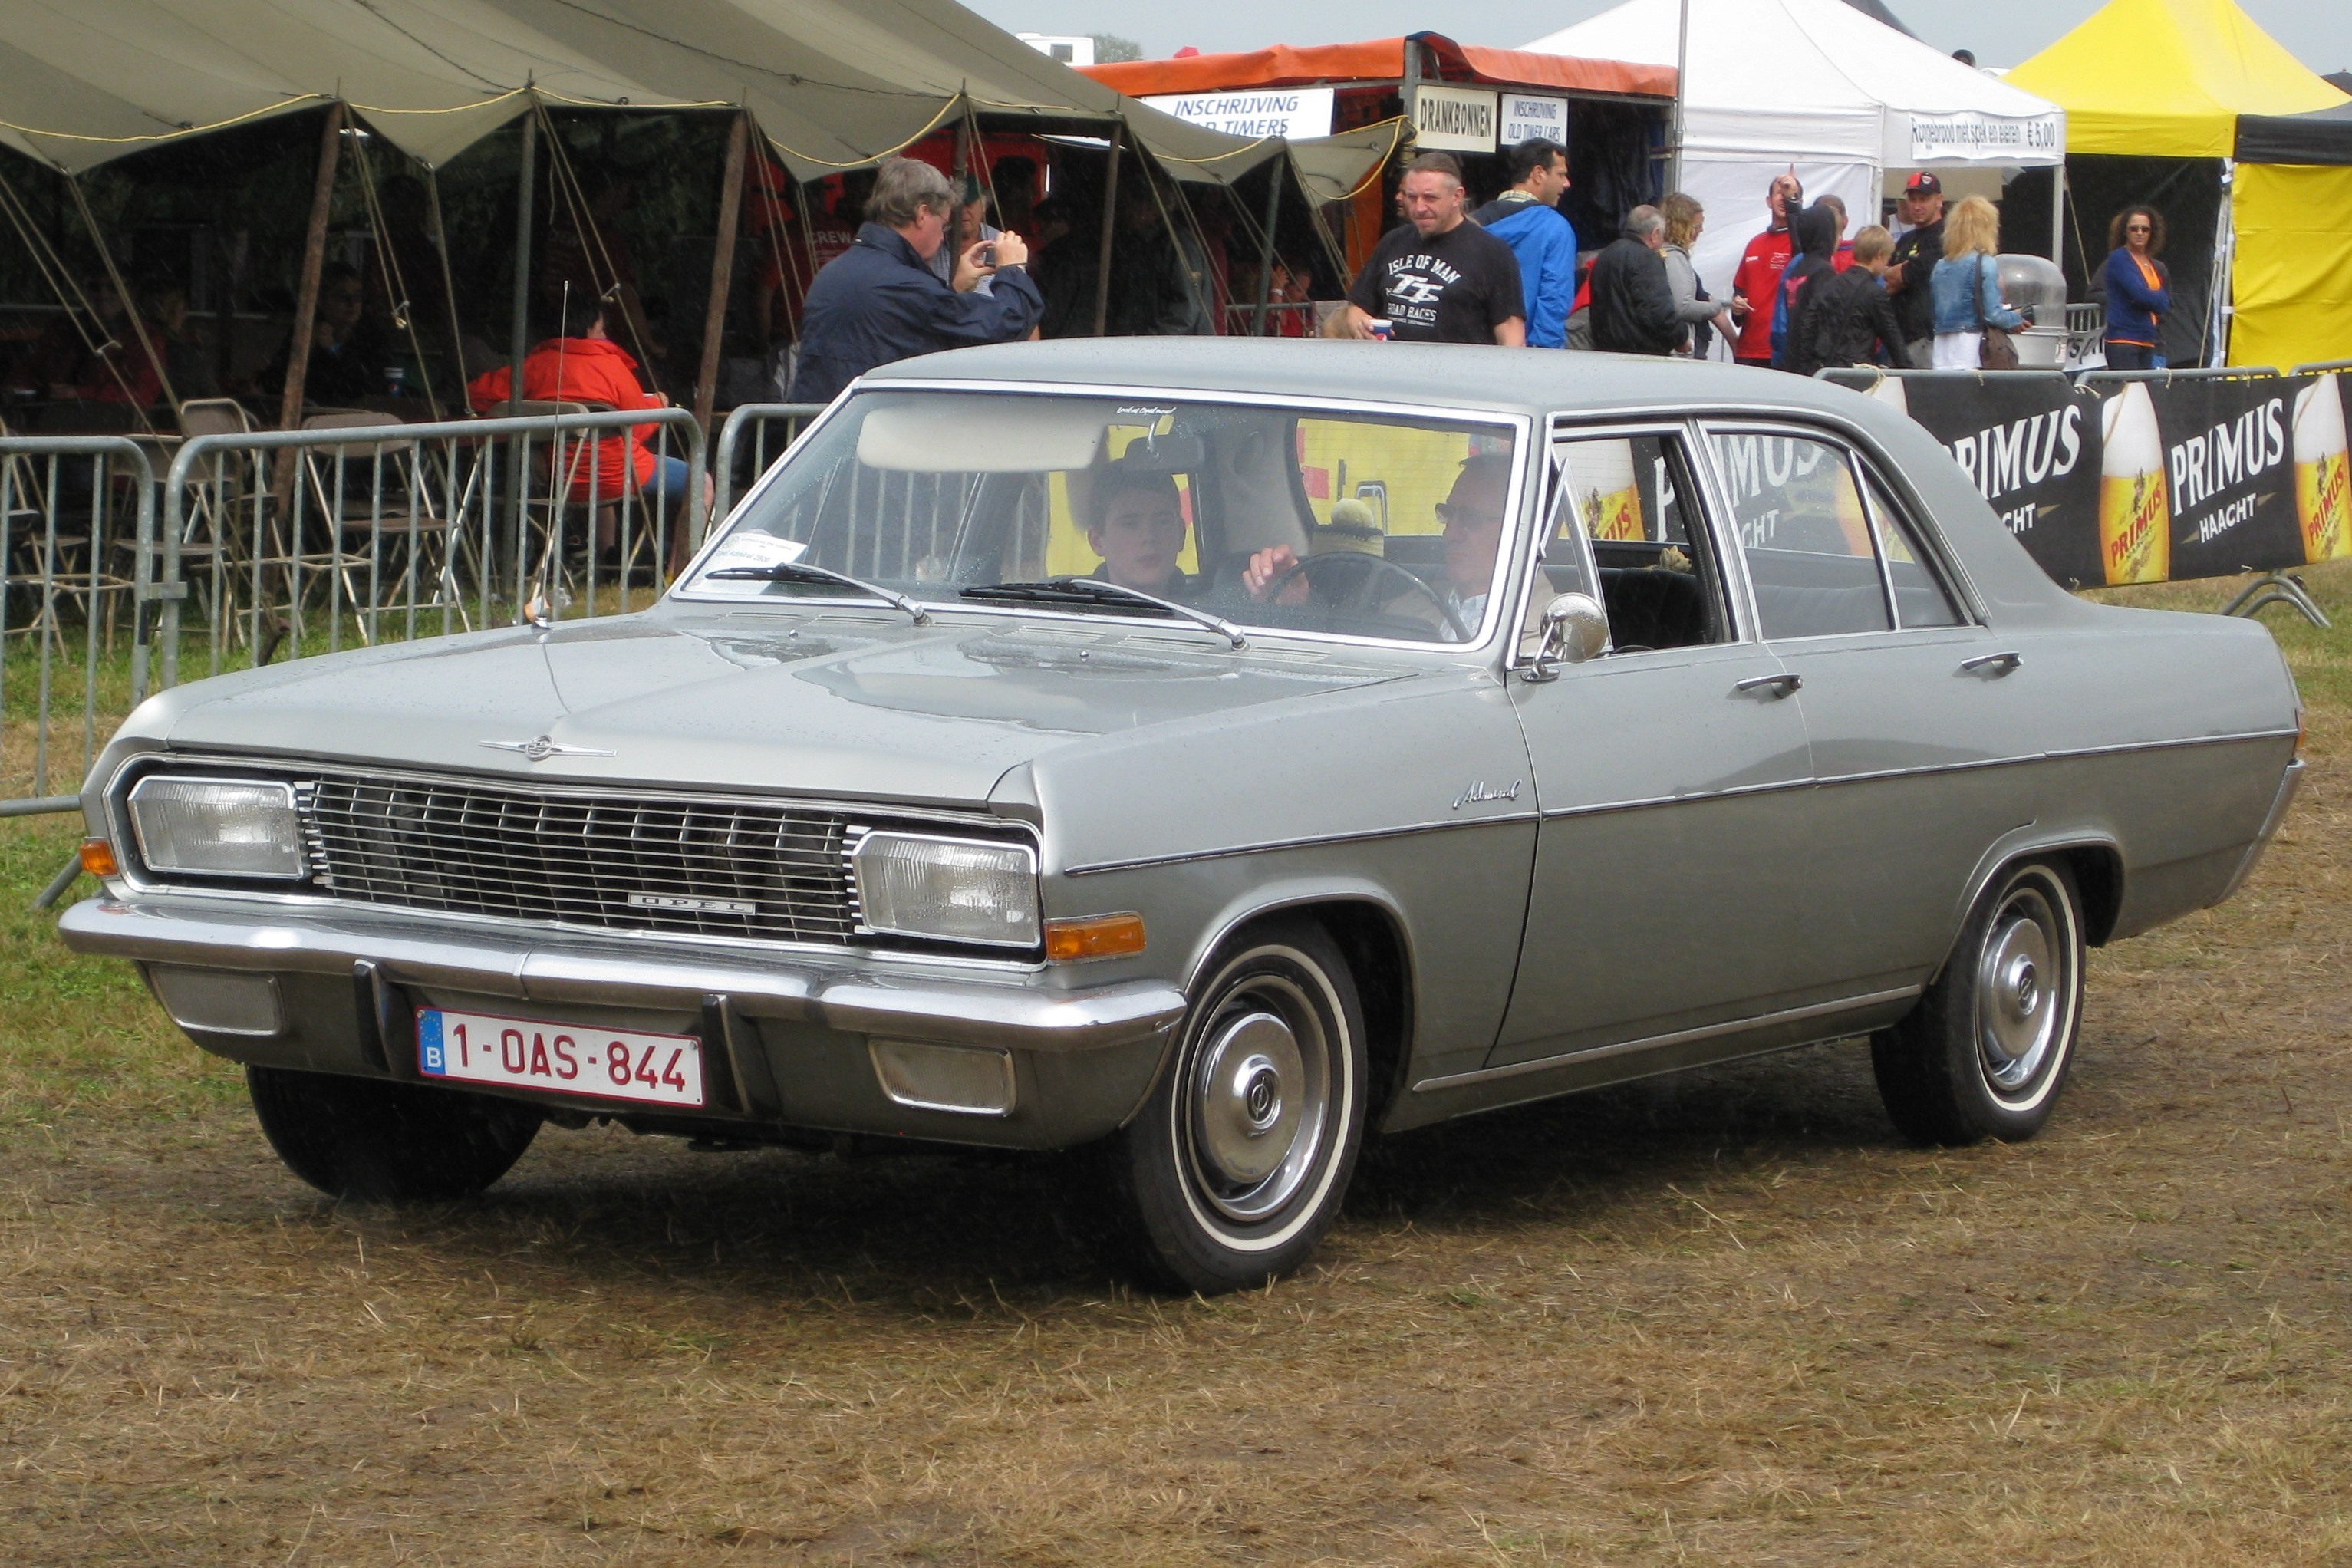 file opel admiral a schaffen diest fly drive 2013 jpg wikimedia commons. Black Bedroom Furniture Sets. Home Design Ideas